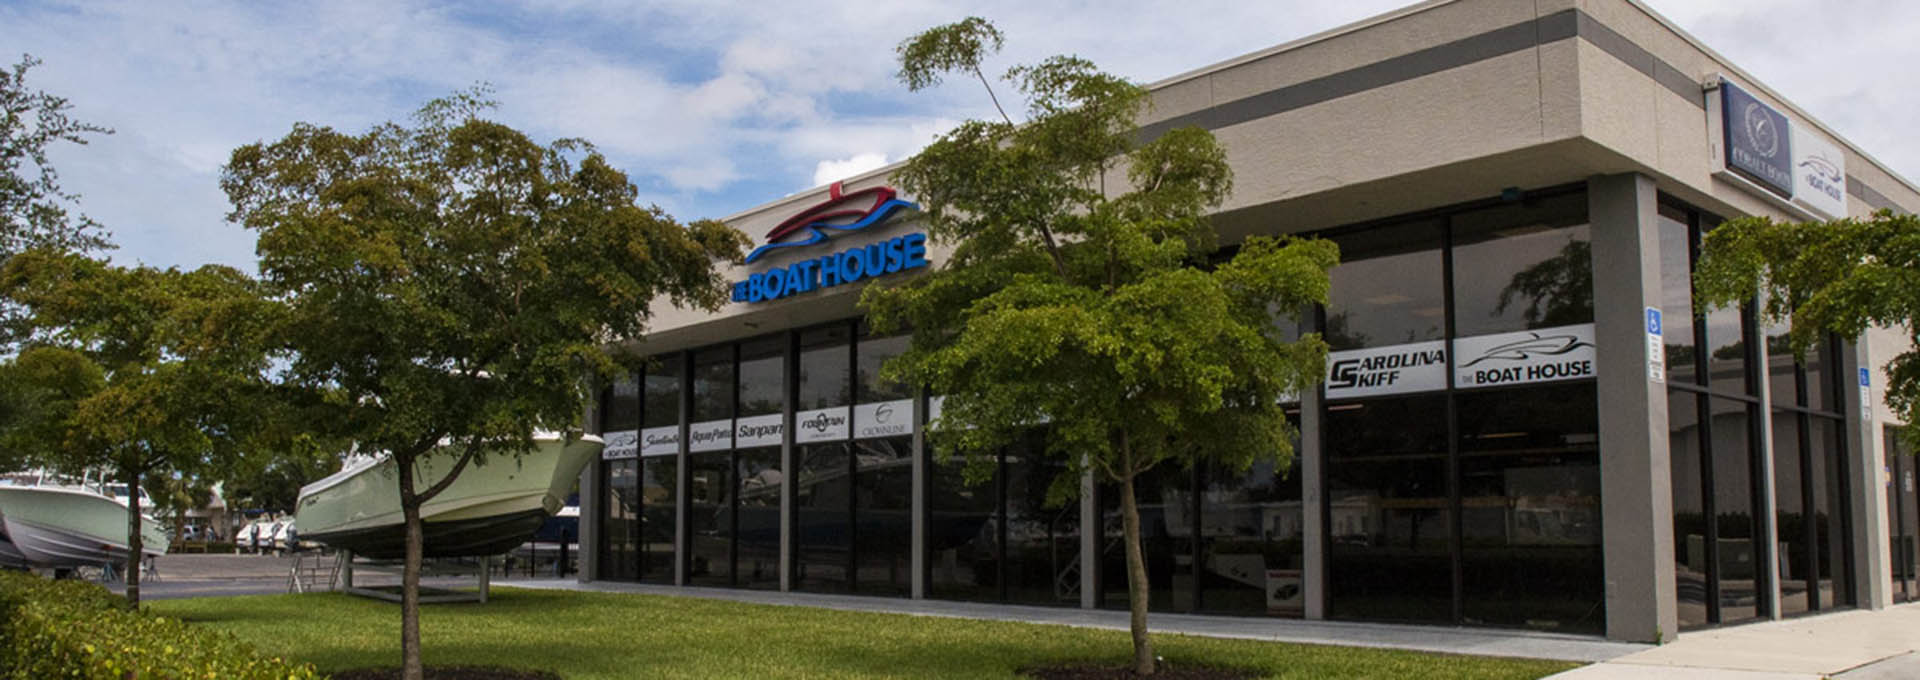 Store front image for the dealership located at Naples, FL